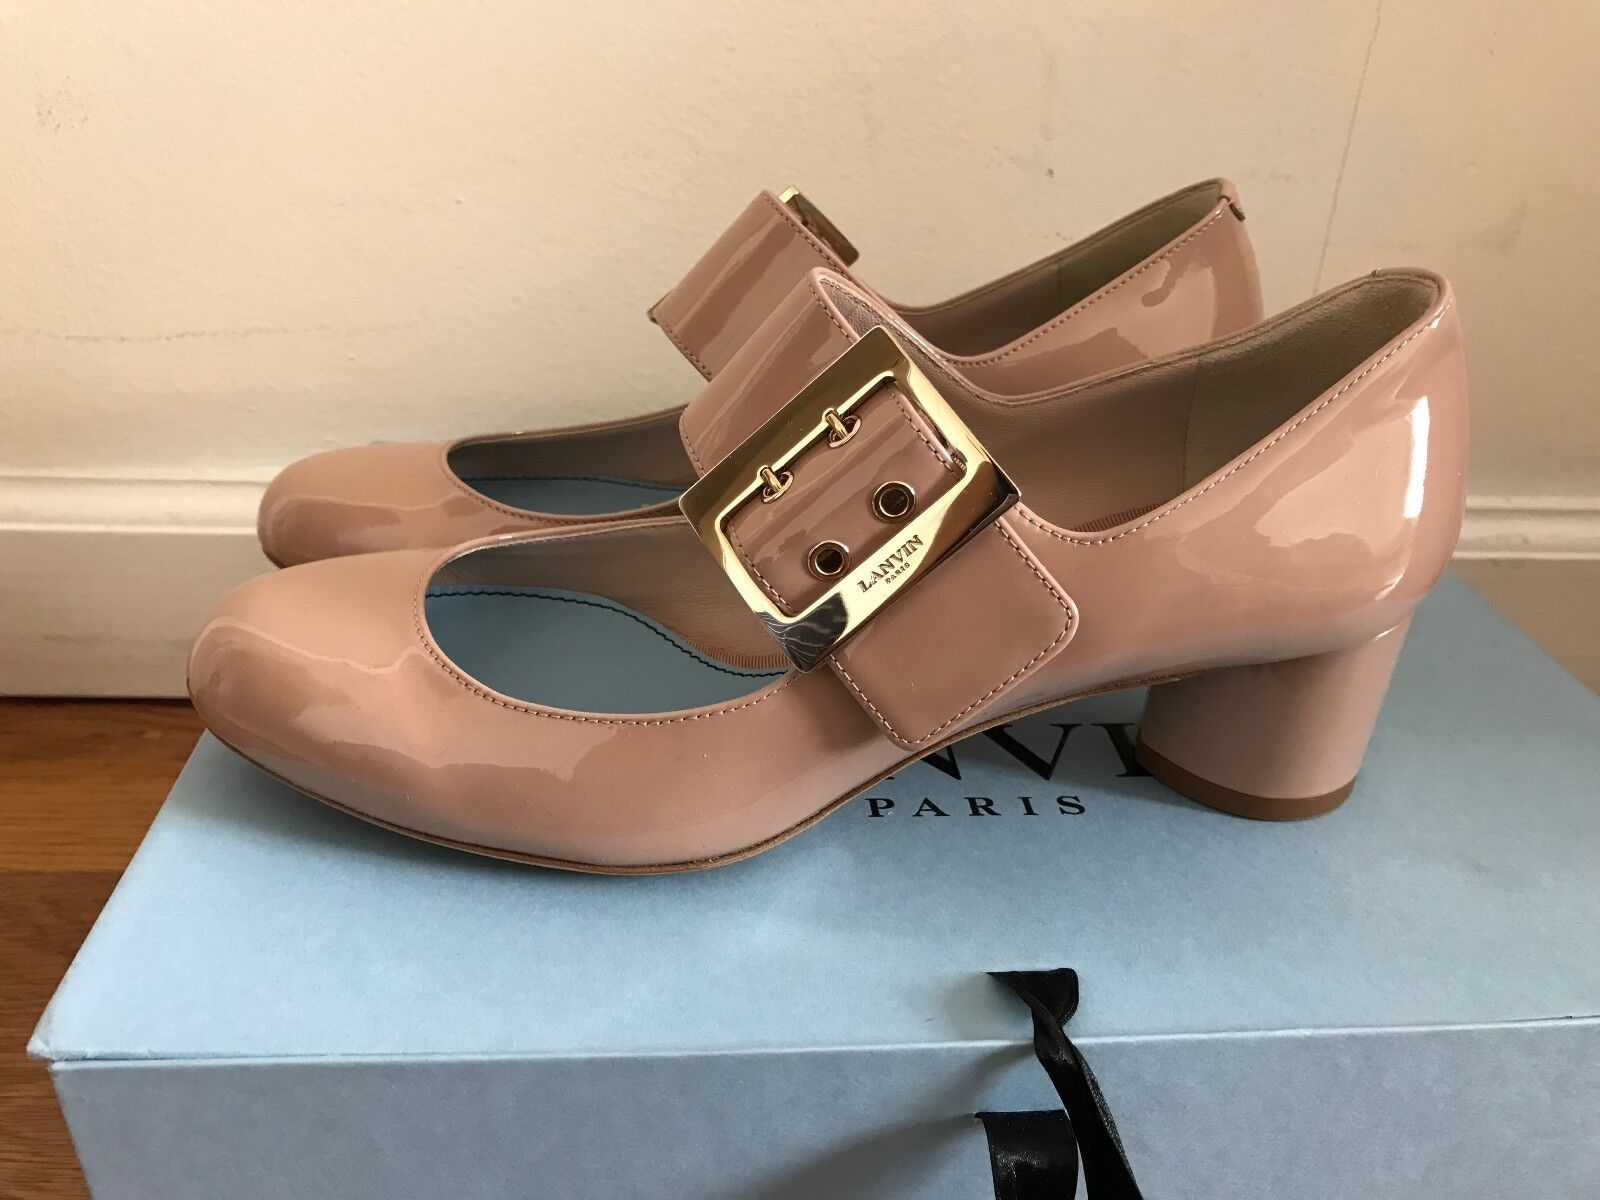 BRAND NEW WITH BOX LANVIN PATENT MARY JANE PUMP IN SIZE 6.5B prada